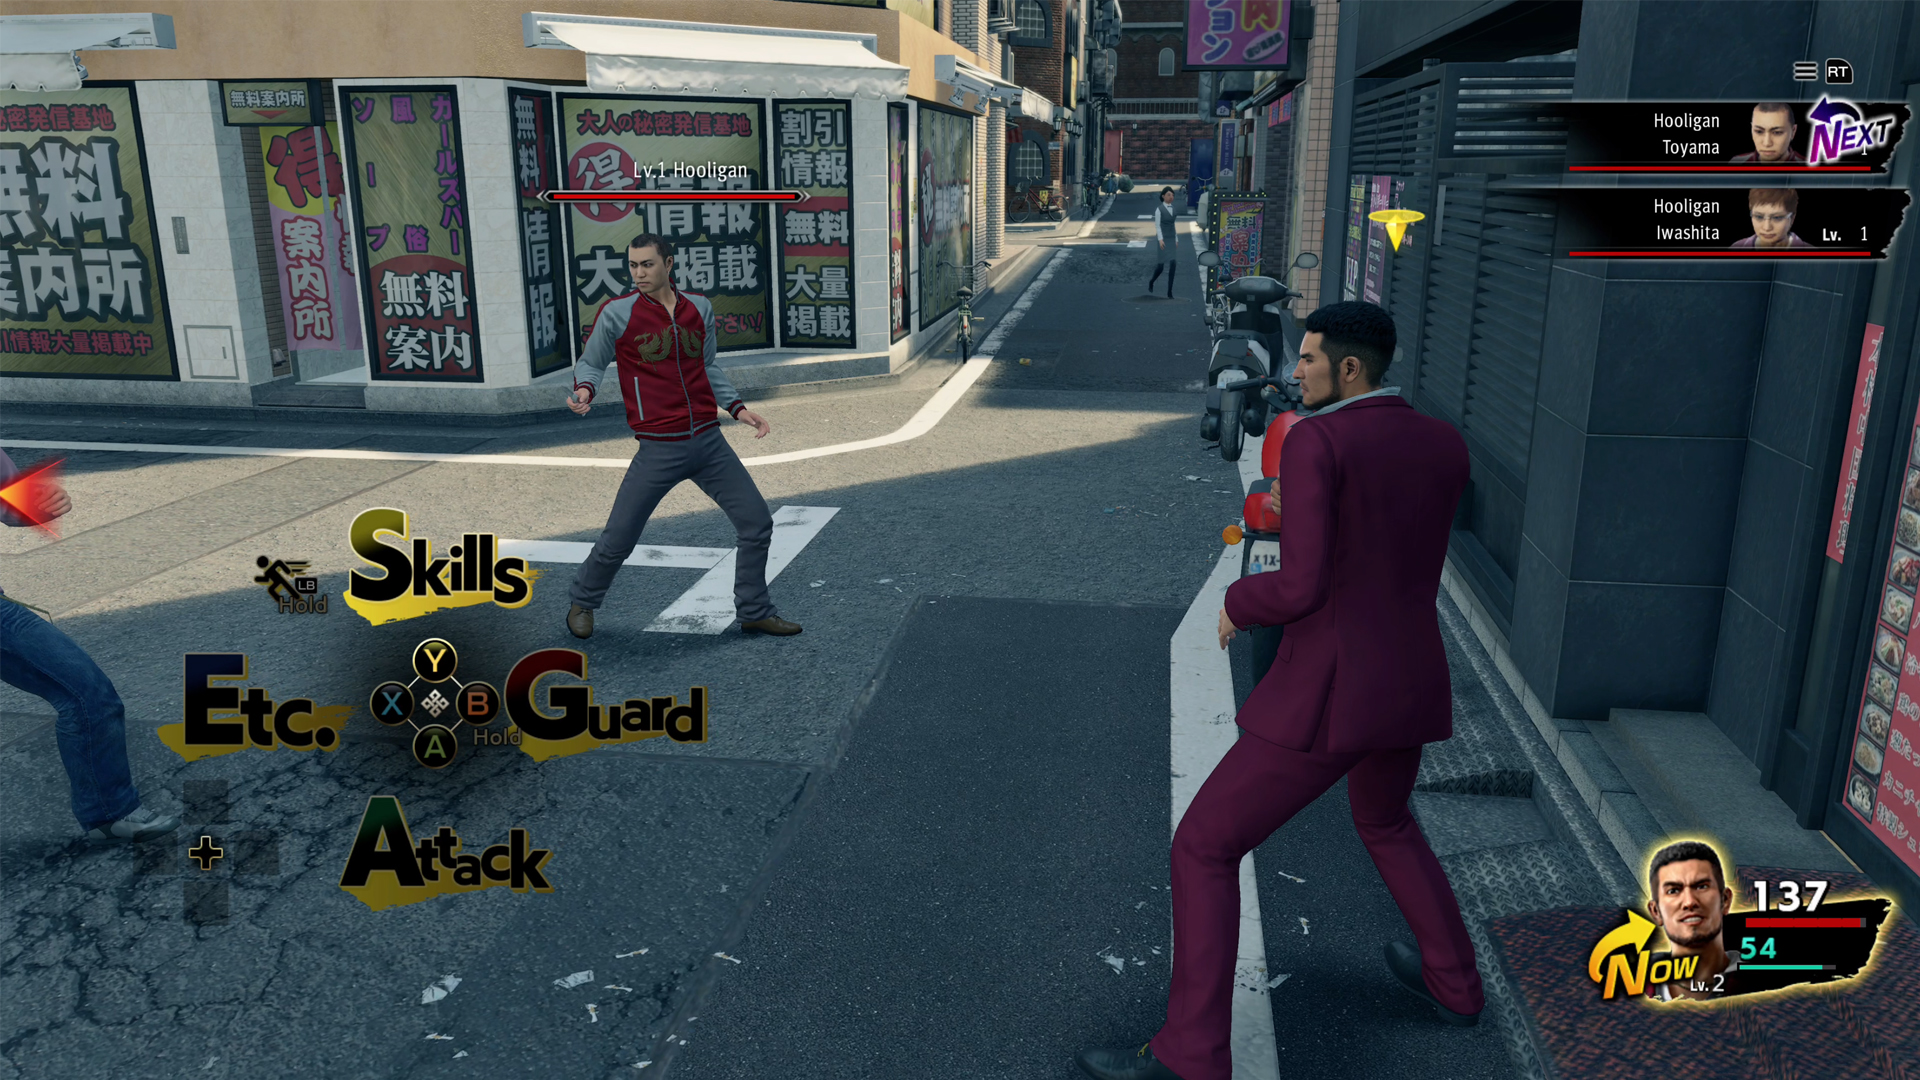 Yakuza Like A Dragon combat screen showing four controls and which face buttons to press. The Y button is for skills, the B button is for Guard, A button is for Attack and X button is for Etc.